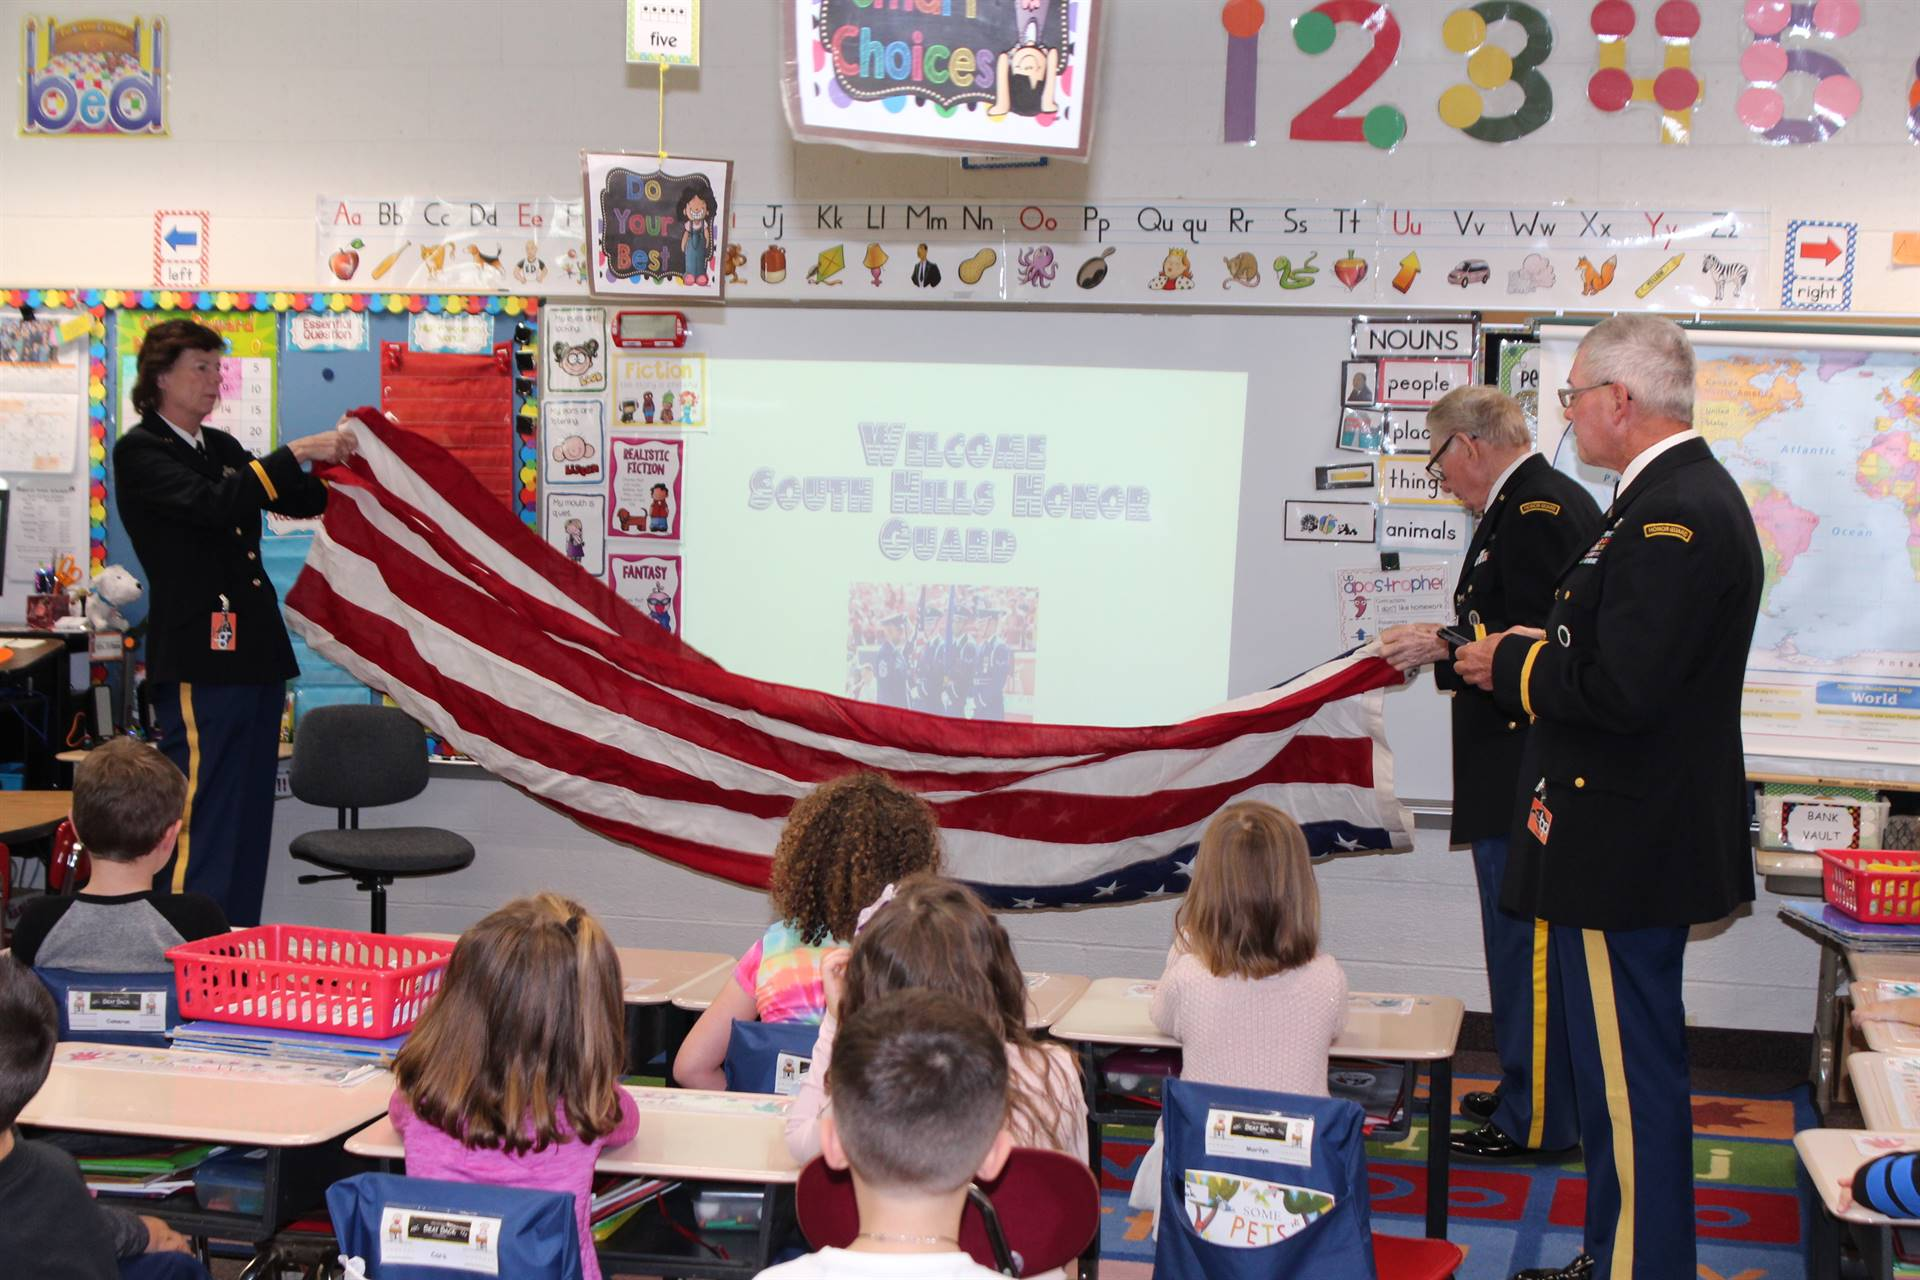 The Honor Guard shows the students how to properly fold an American flag